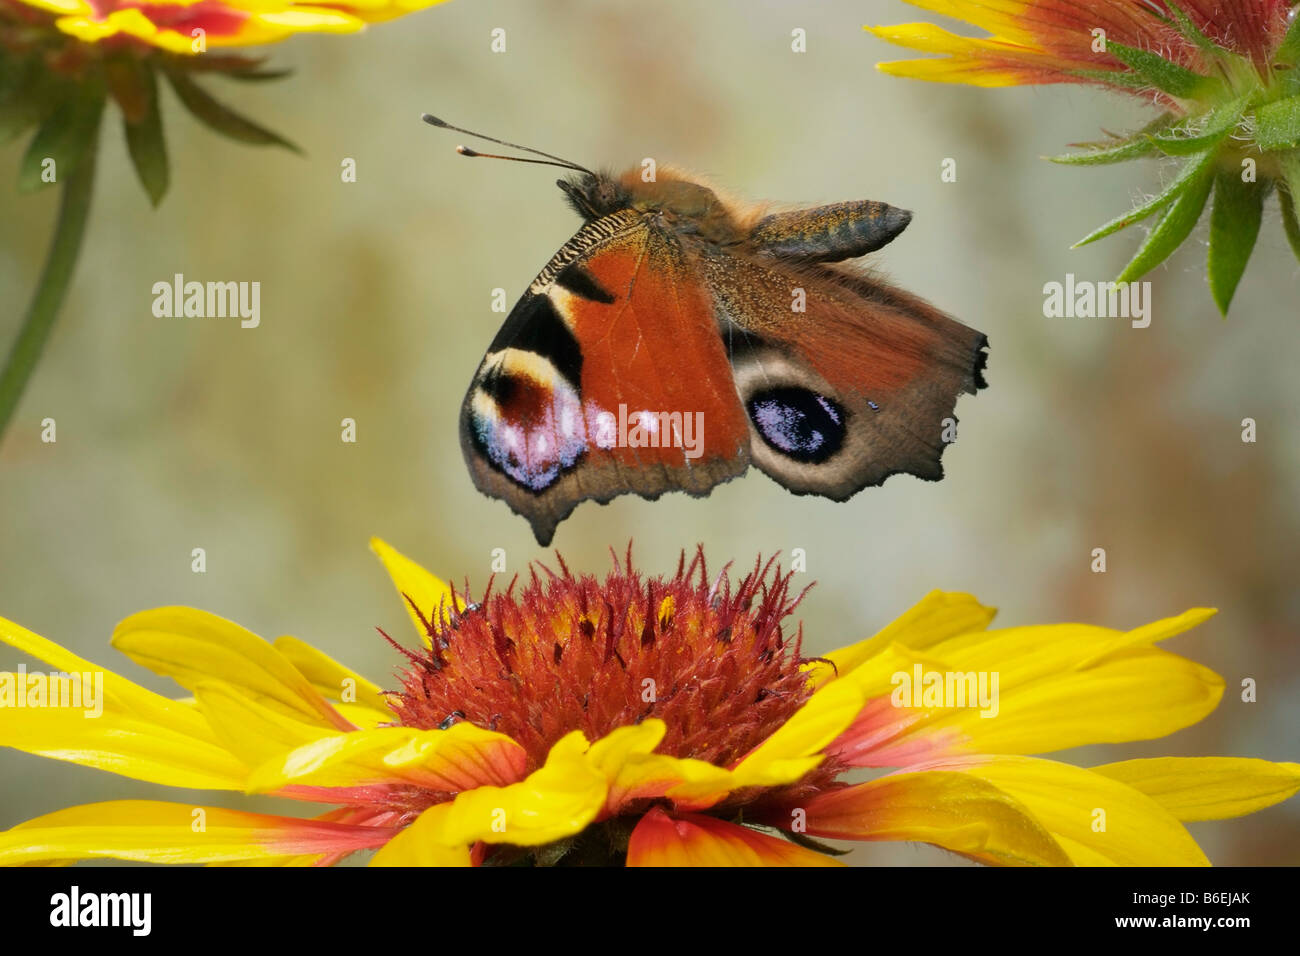 European Peacock Butterfly (Inachis io), Saxony-Anhalt, Germany - Stock Image